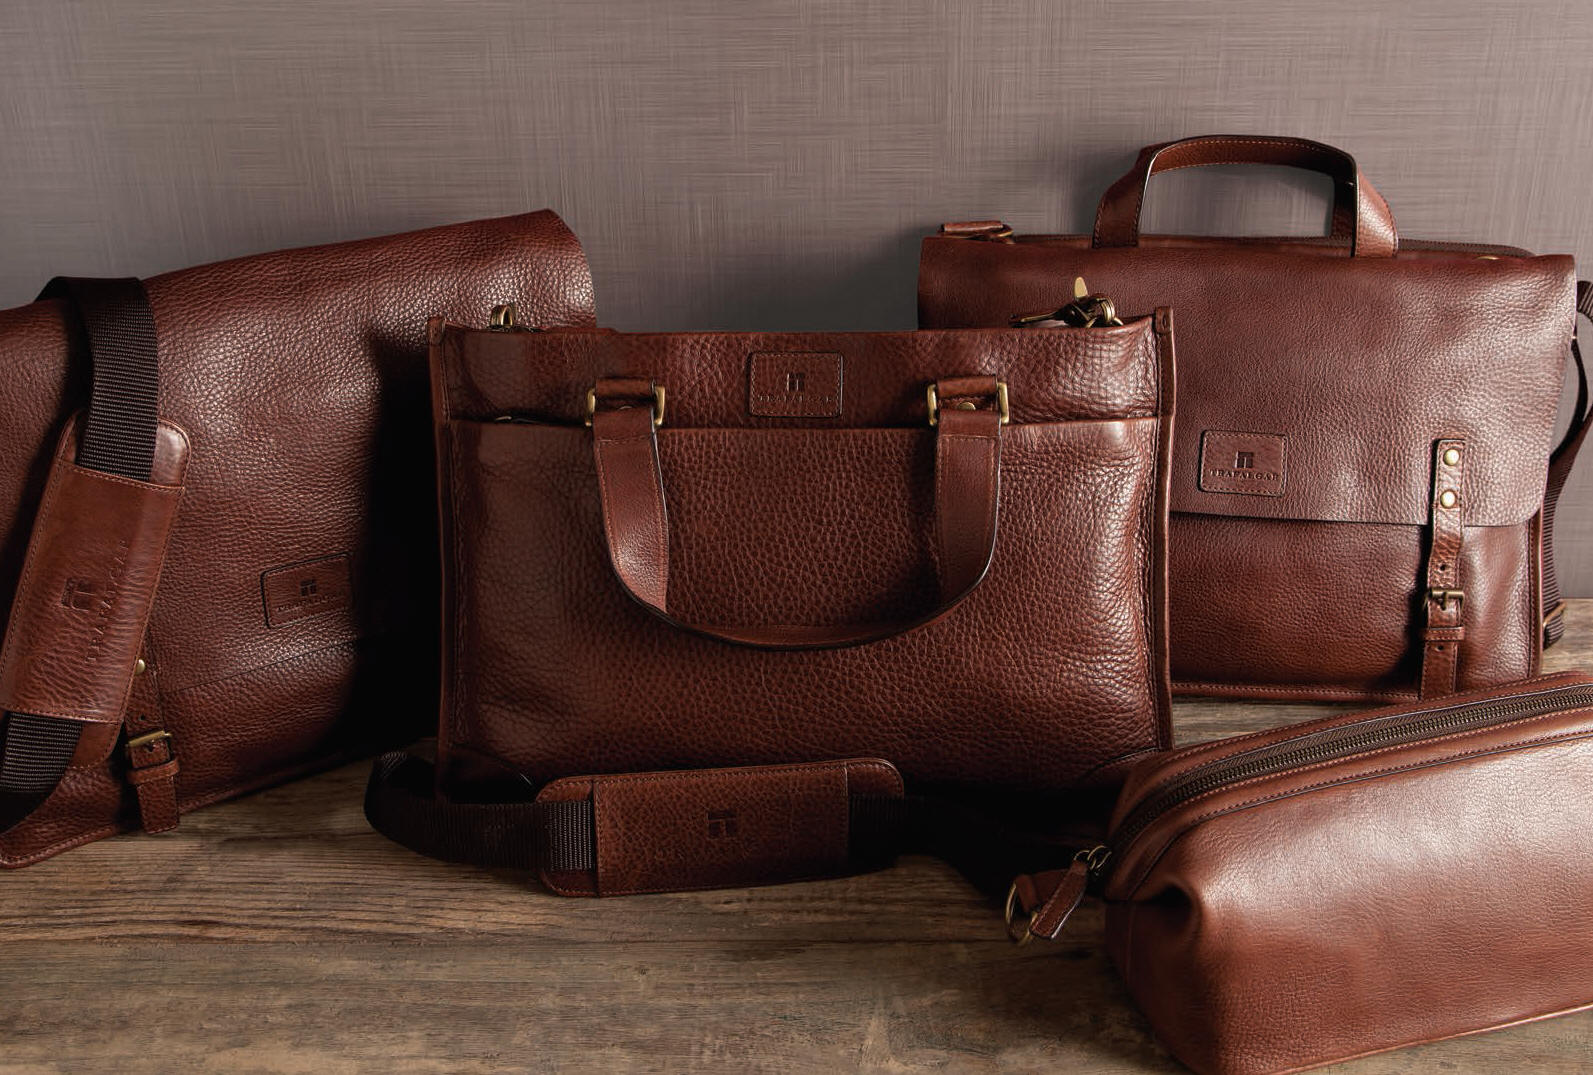 Trafalgar Travel and Business Cases from Dann, All Leather Bag ...